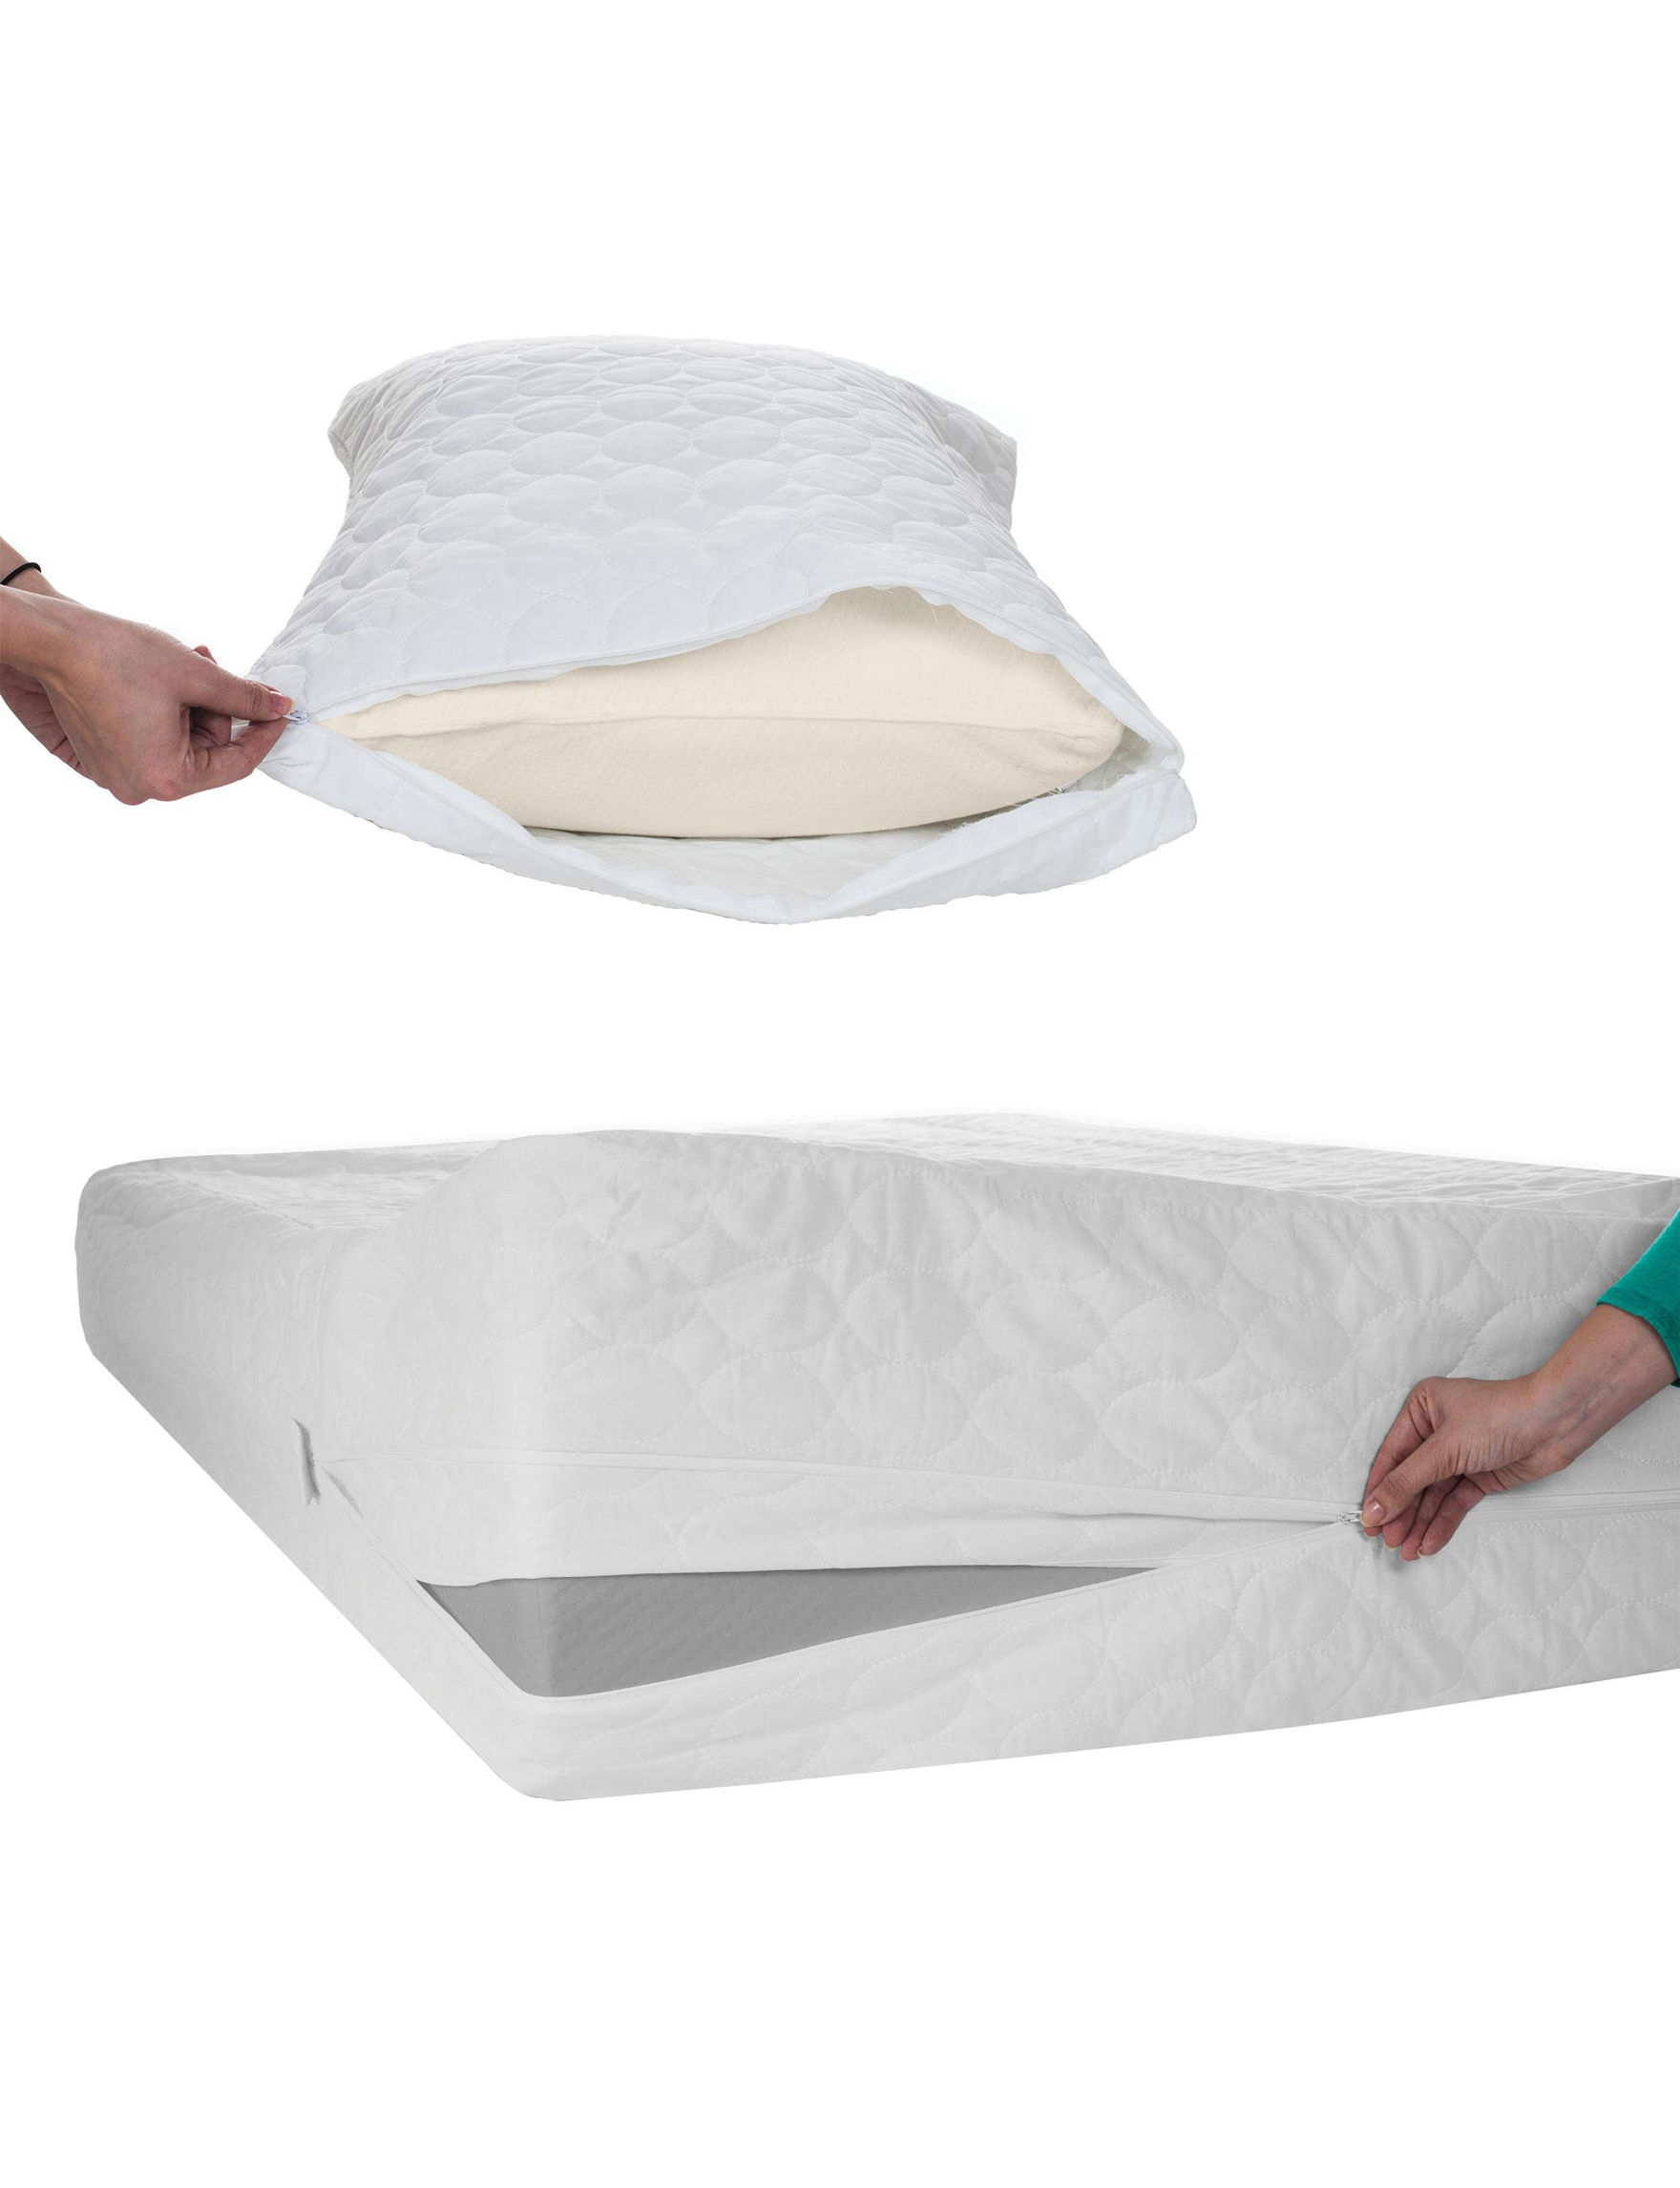 Remedy White Mattress Pads & Toppers Sheets & Pillowcases